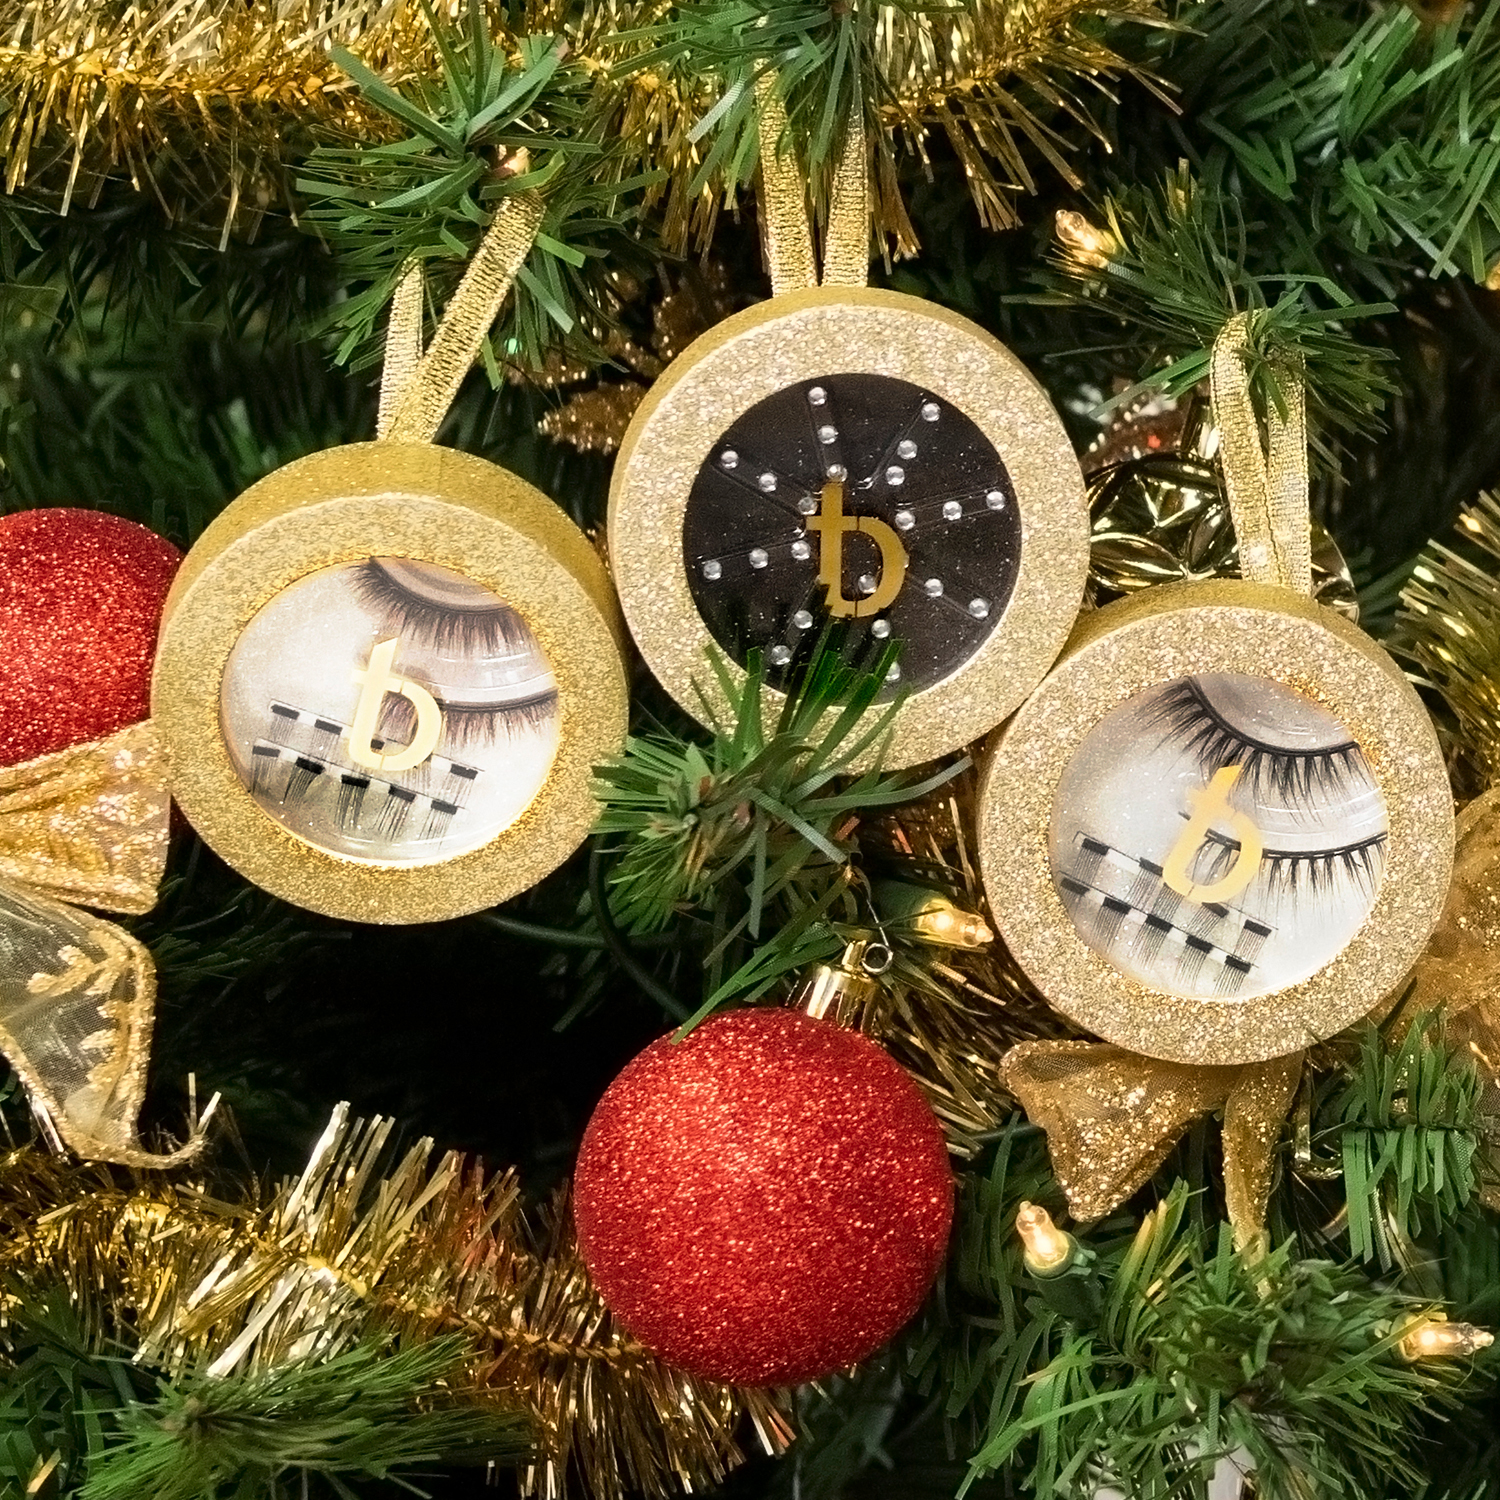 Holiday Luxe Bundle ornaments with lashes inside